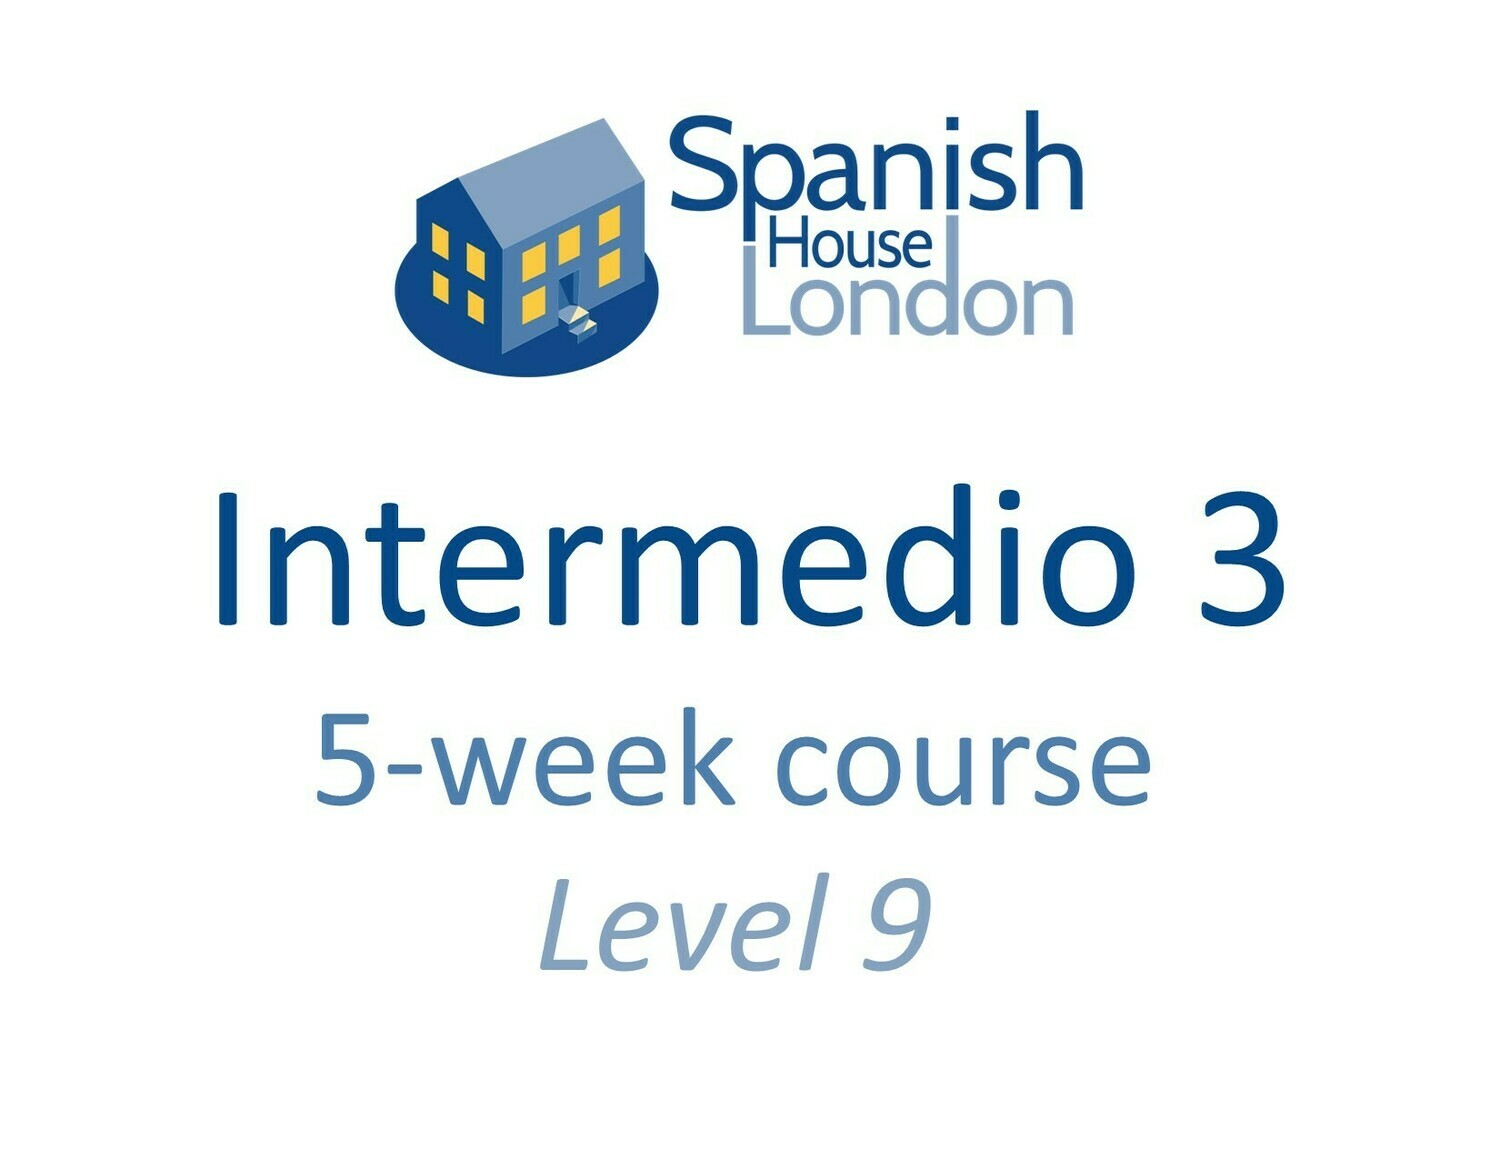 Intermedio 3 Five-Week Intensive Course starting on 2nd November